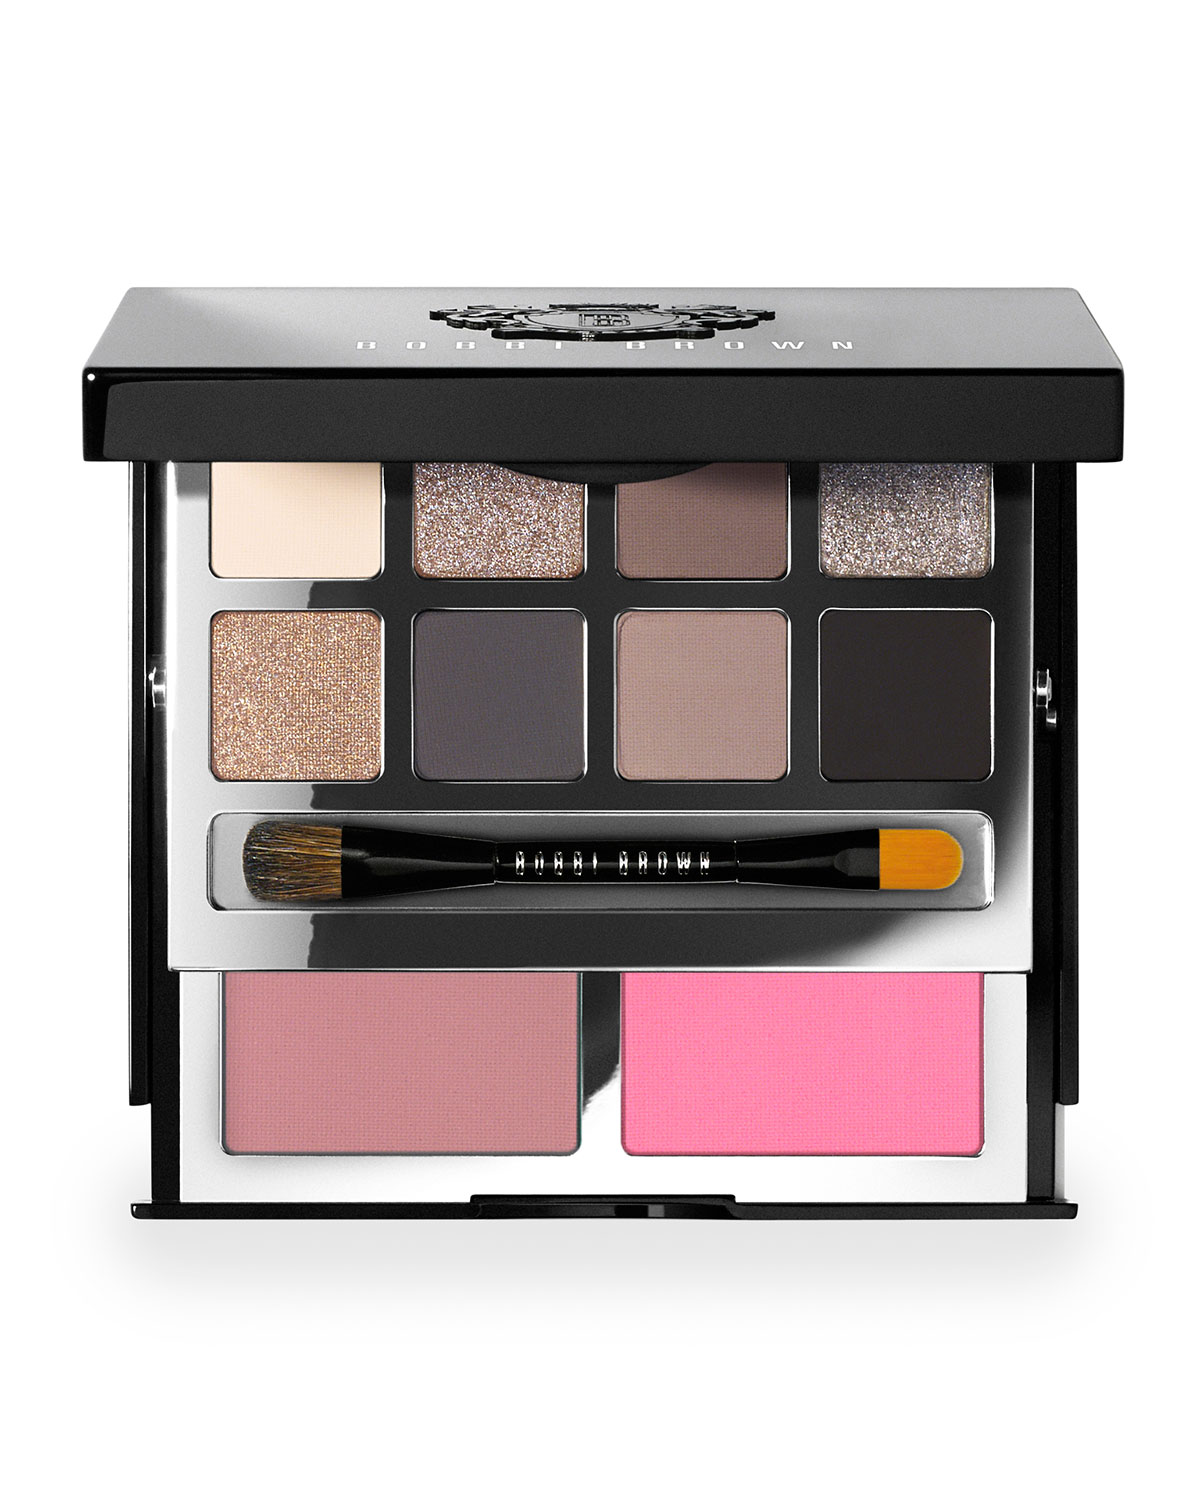 Deluxe Eye and Cheek Palette - Bobbi Brown